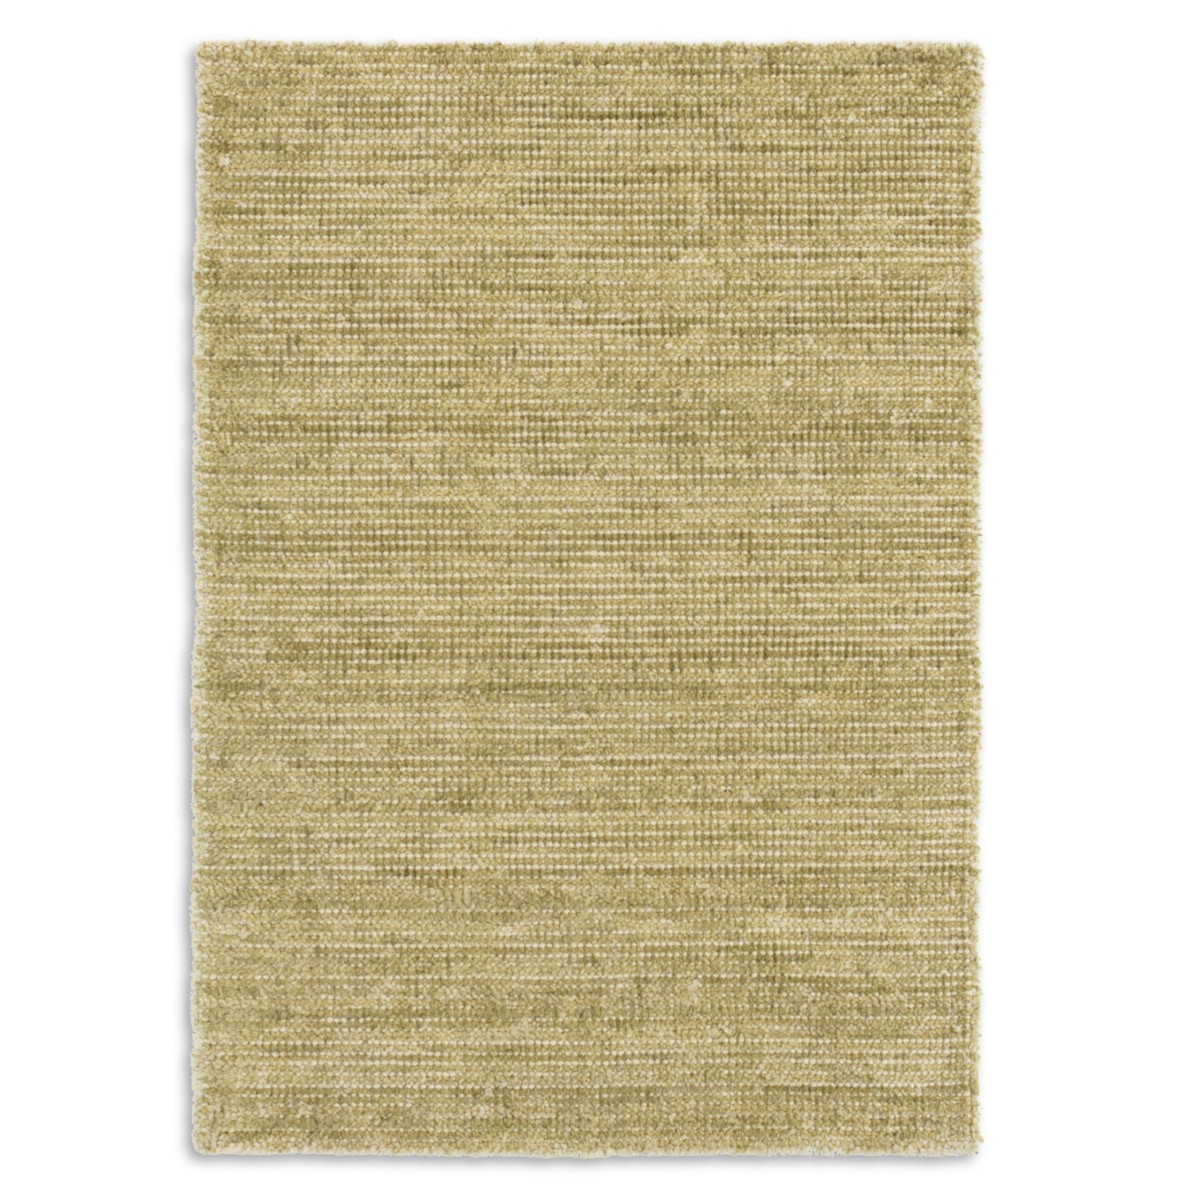 Quartz Woven Viscose/Cotton Rug - Lichen